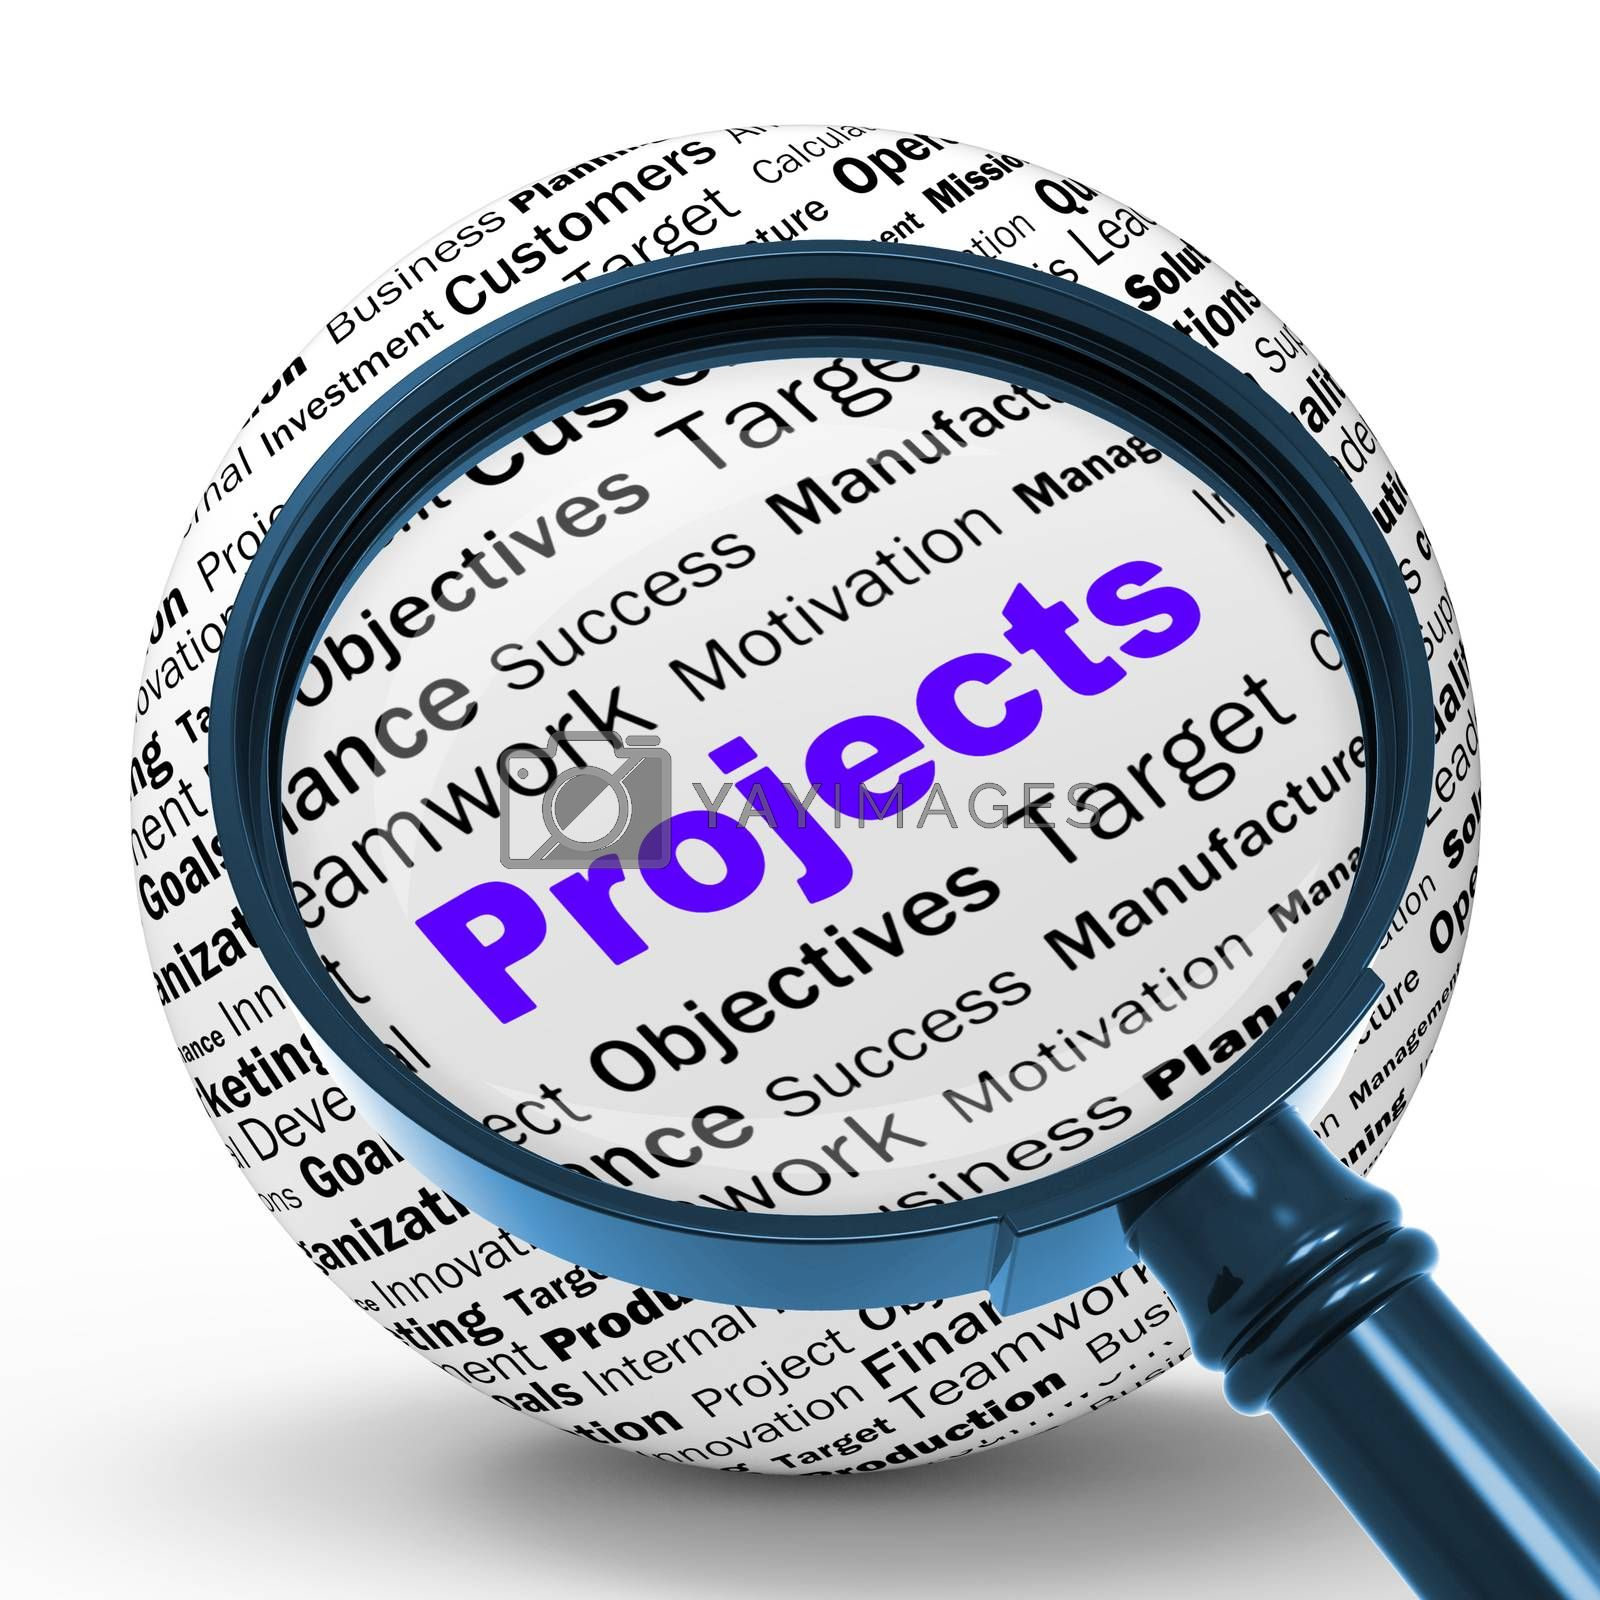 Projects Magnifier Definition Means Programming Activities Or En by stuartmiles